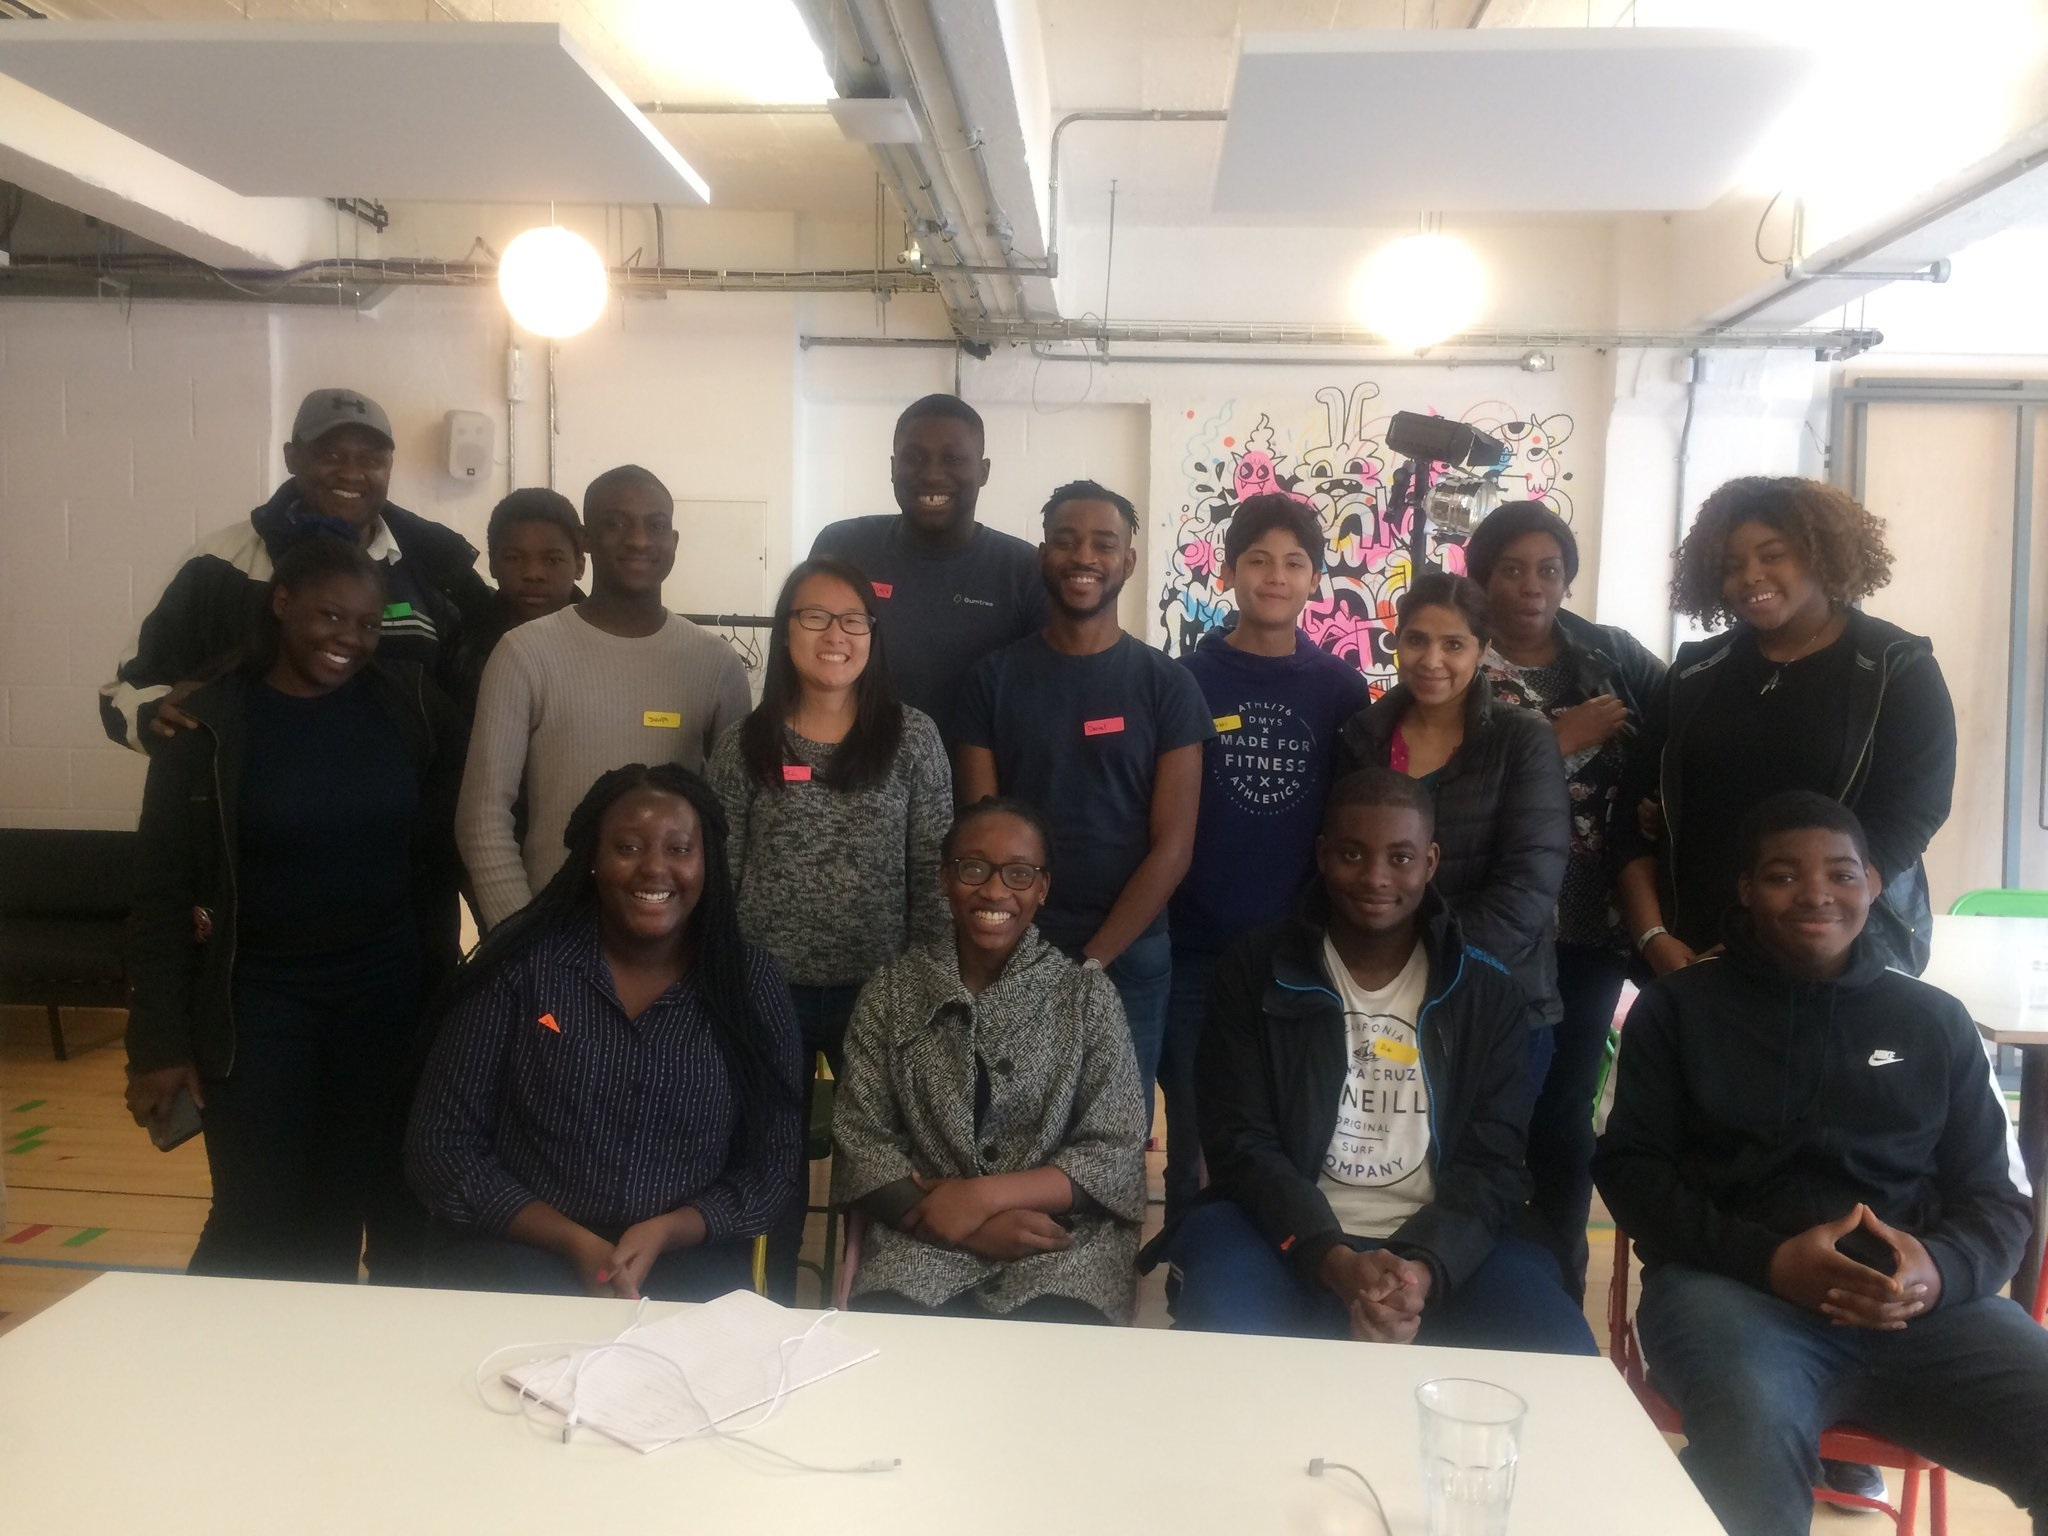 Coders of Colour Second event